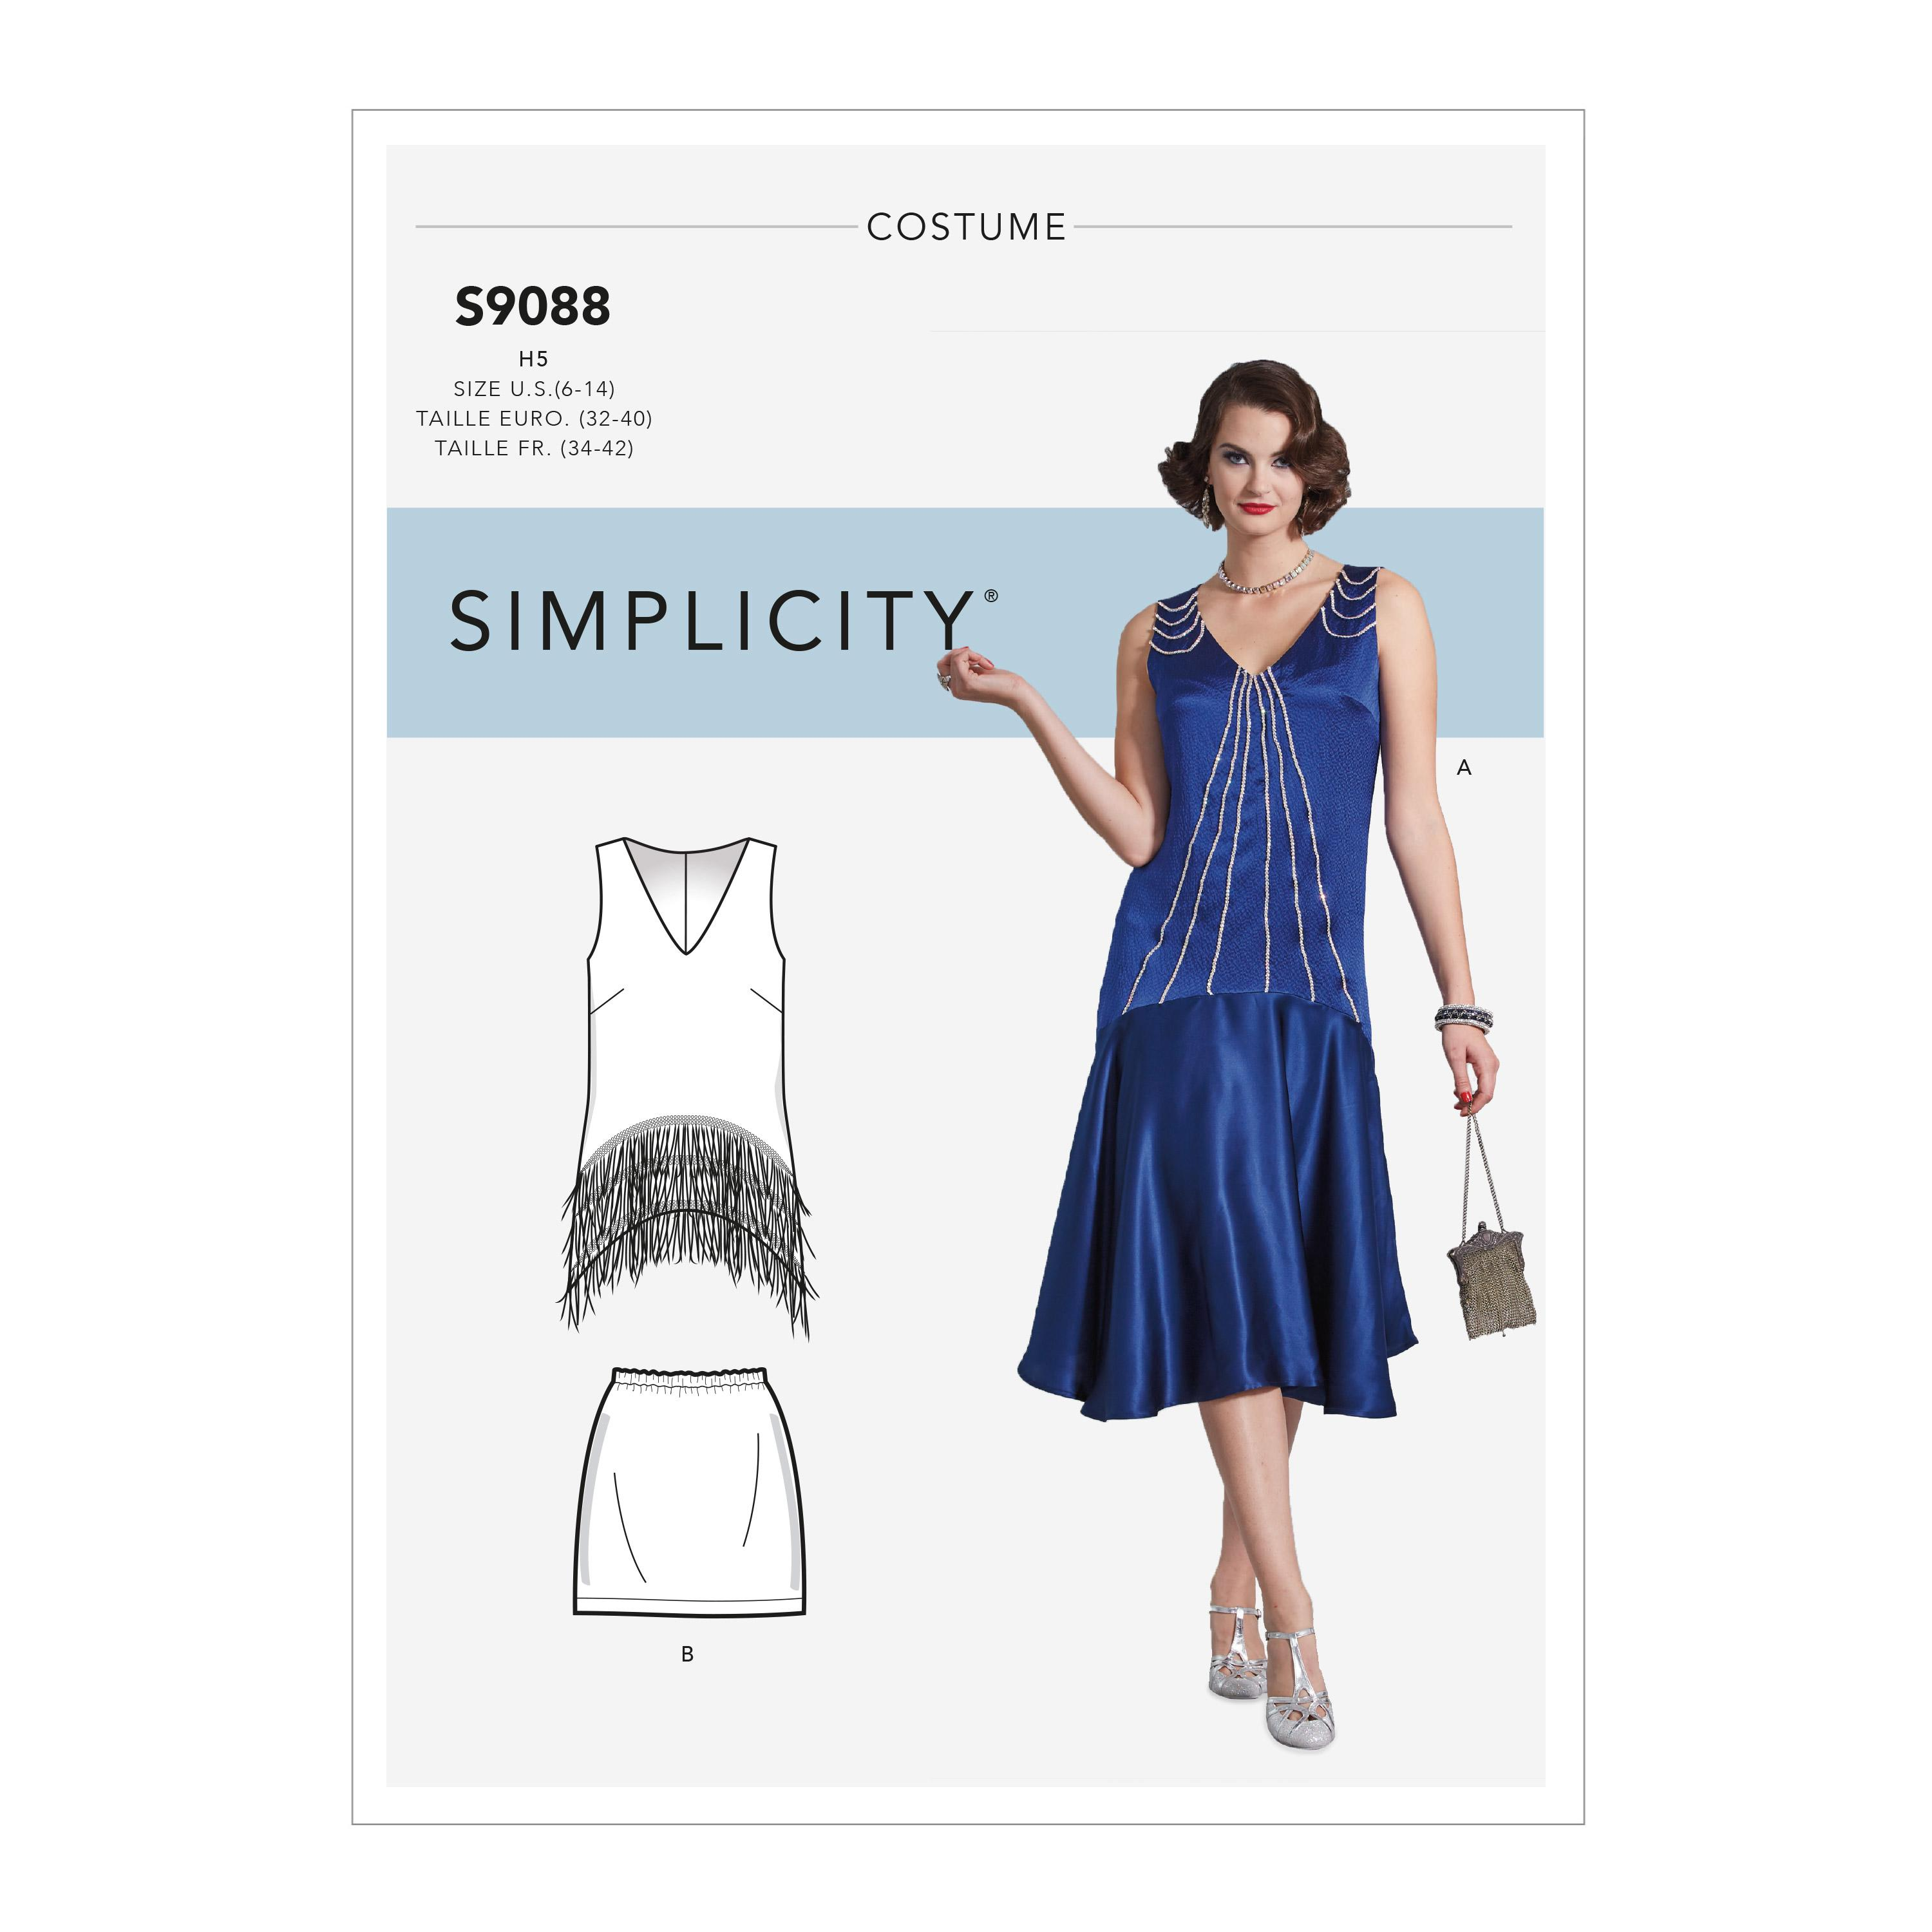 Simplicity S9088 Misses' Flapper Costumes